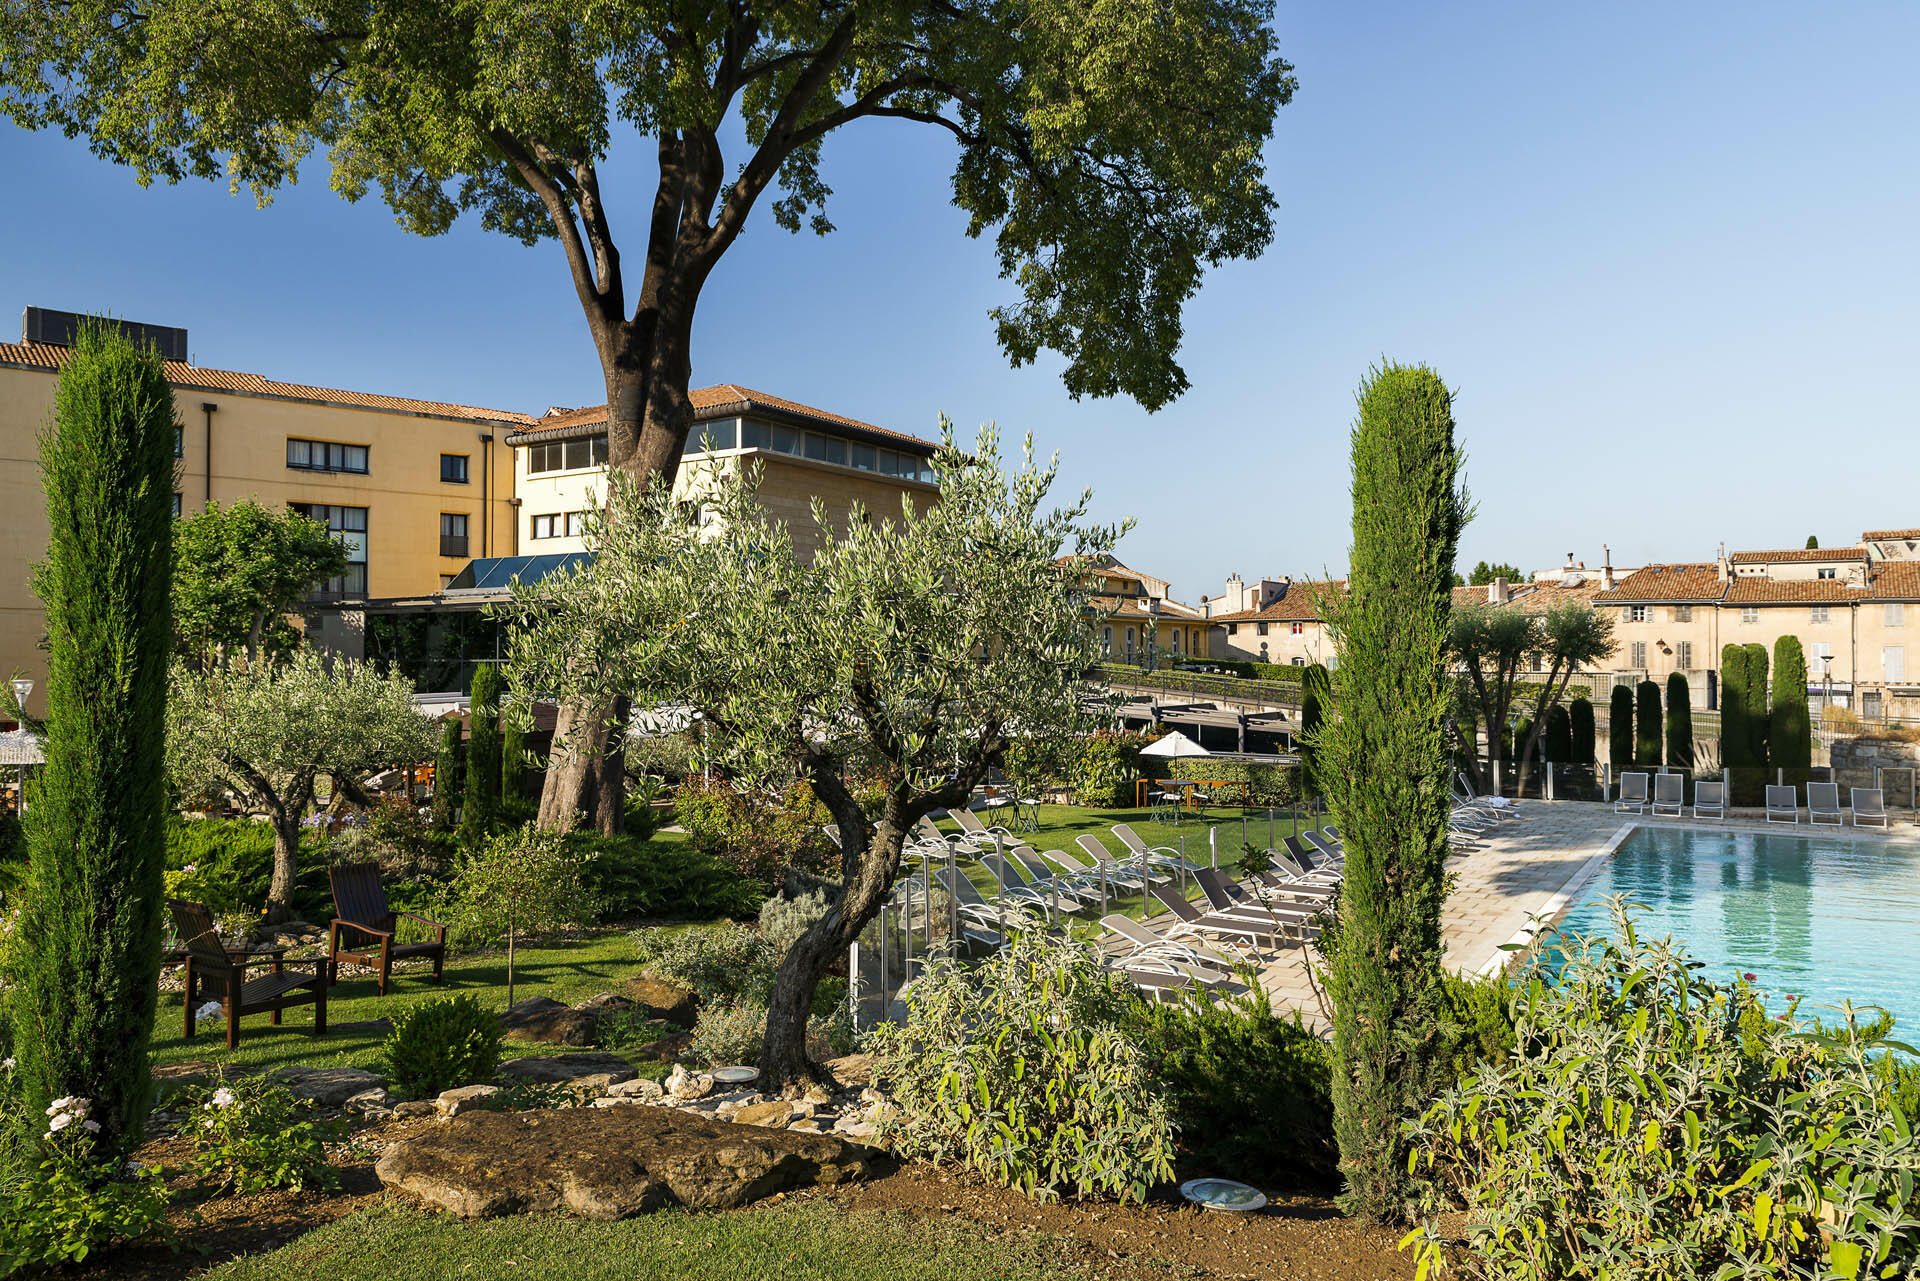 Aquabella Hotel in Aix En Provence, France